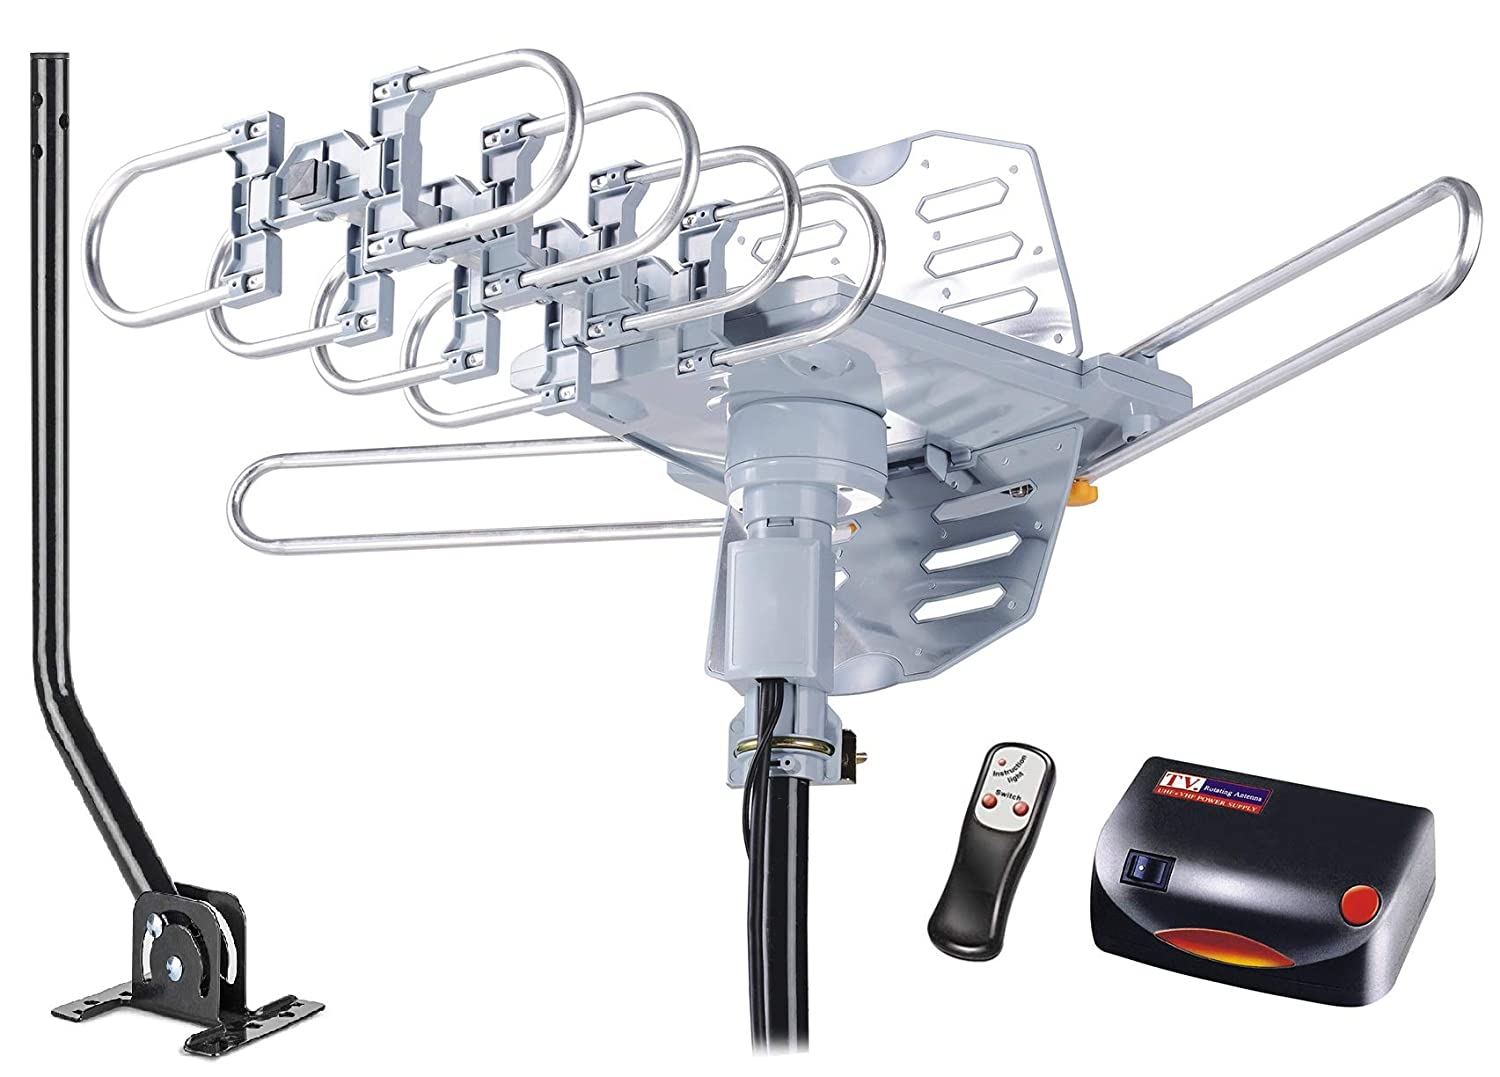 Mcduory Hdtv Antenna Amplified Digital Outdoor Ac Home Wiring 150 Miles Range With Mounting Pole 360 Degree Rotation Wireless Remote Tools Free